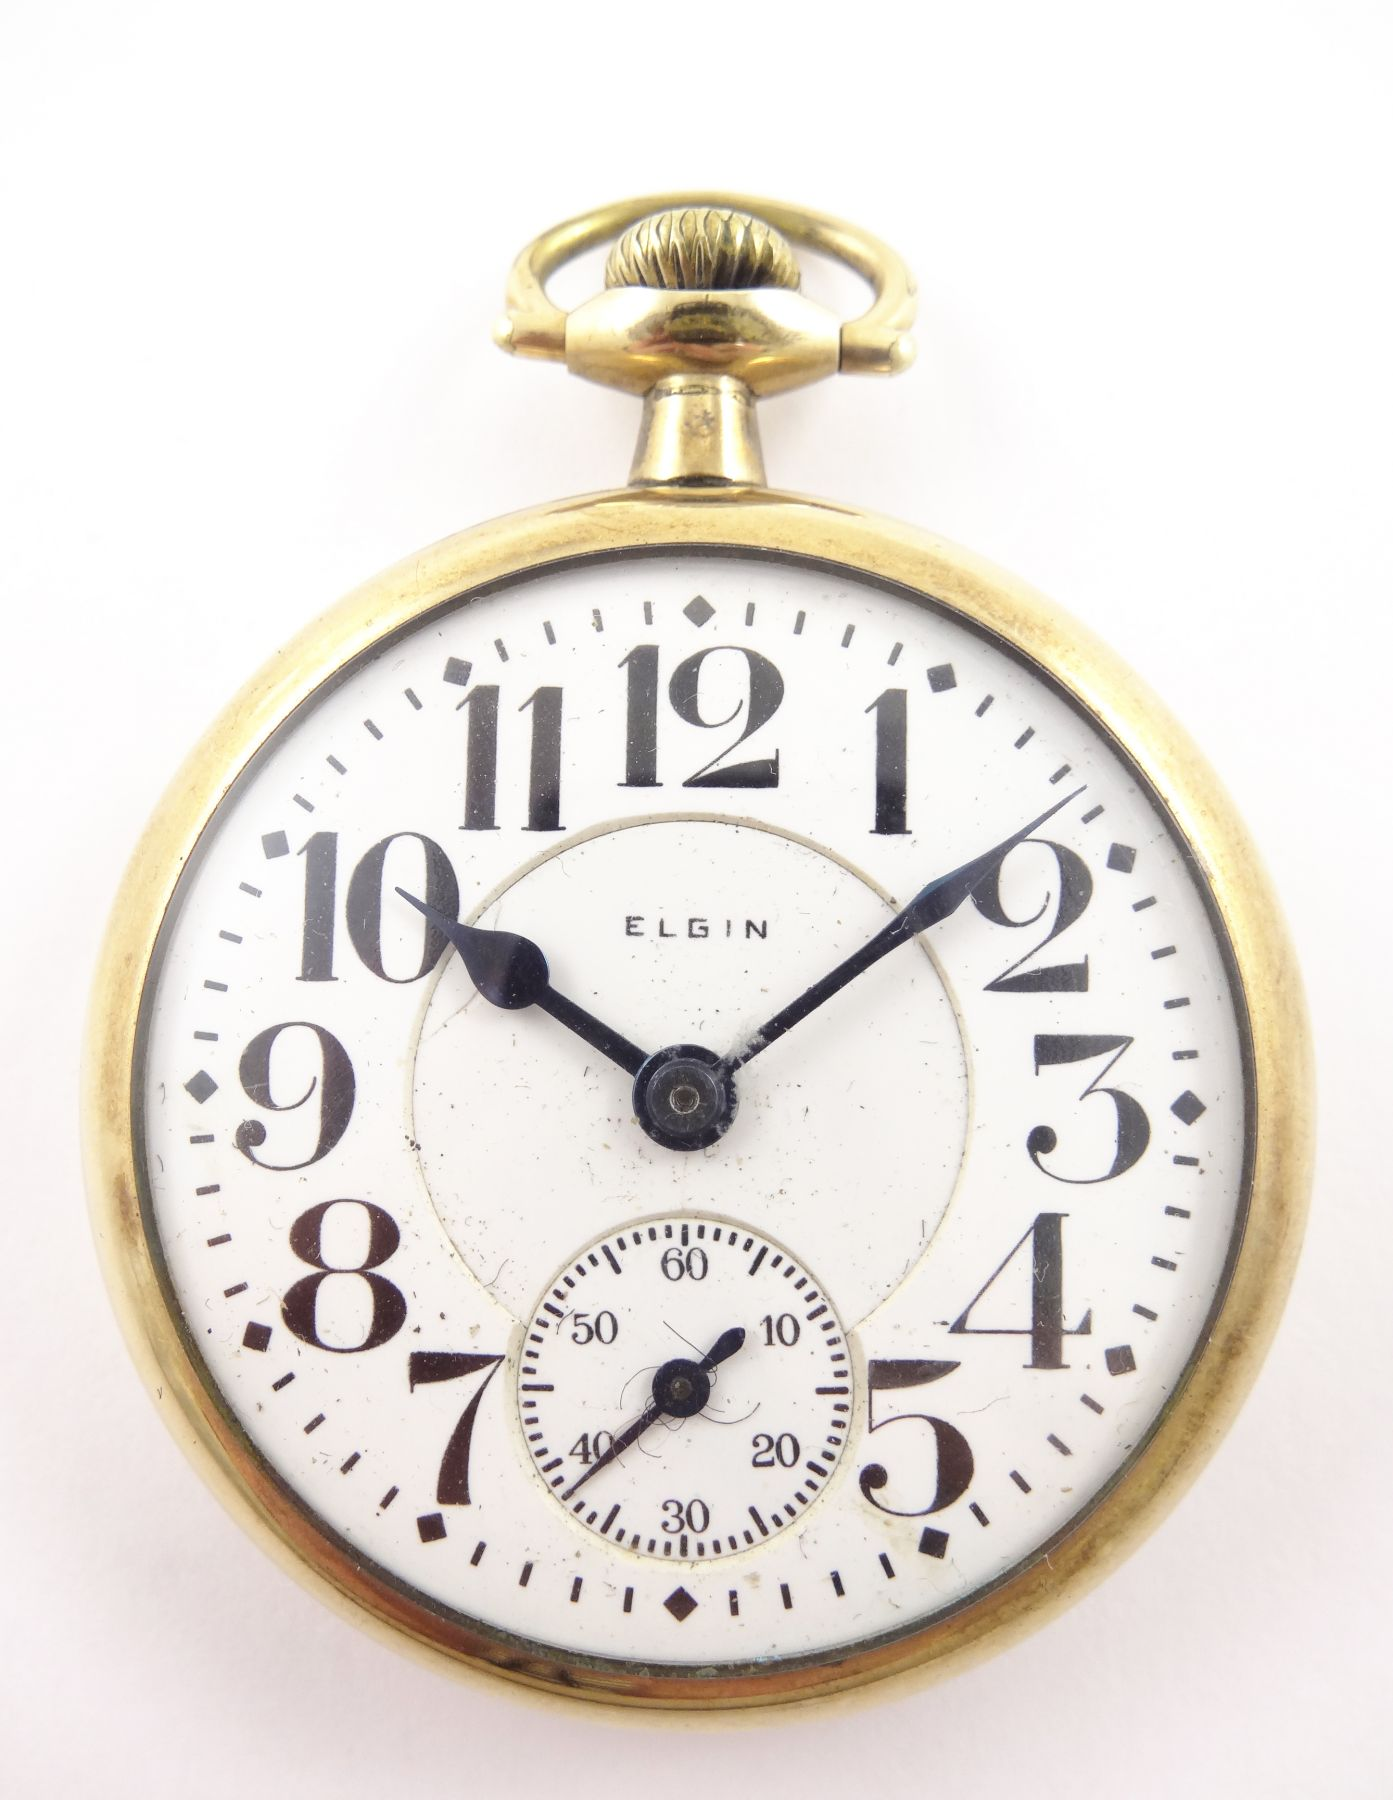 Antique Railroad Grade Elgin Gold Pocketwatch